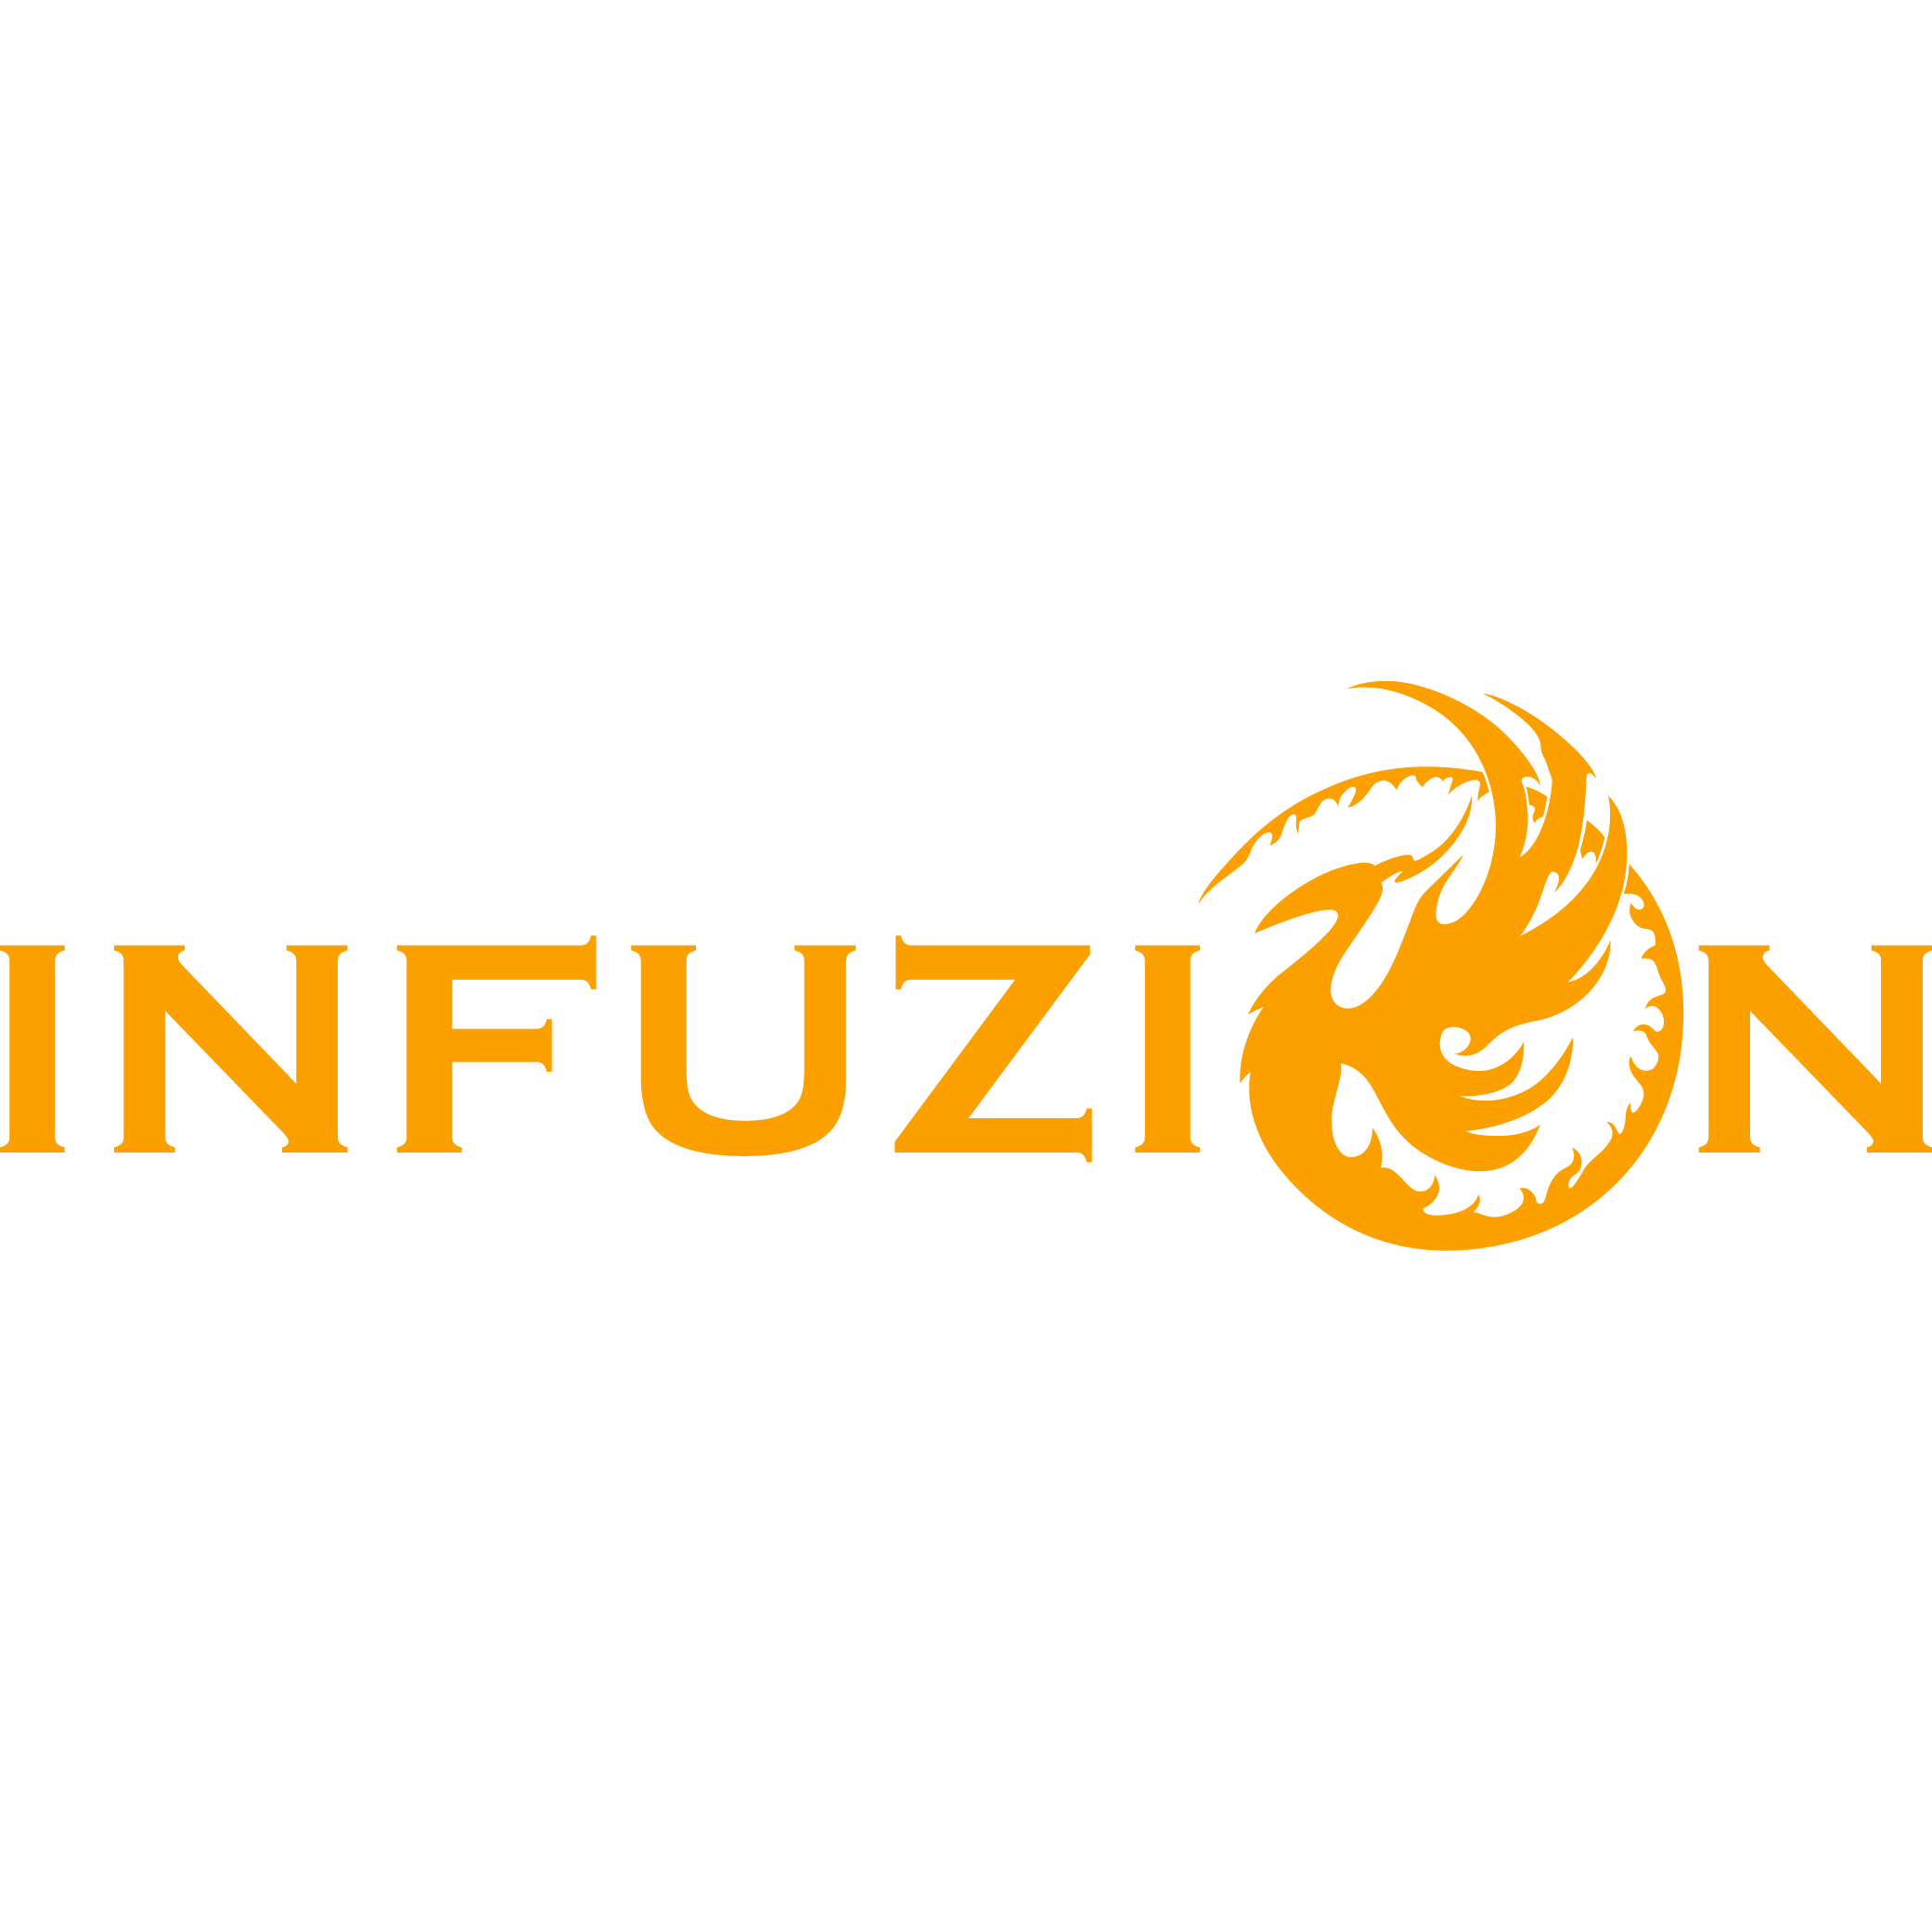 ryerson_infuzion_color_nobackground1 (1).png